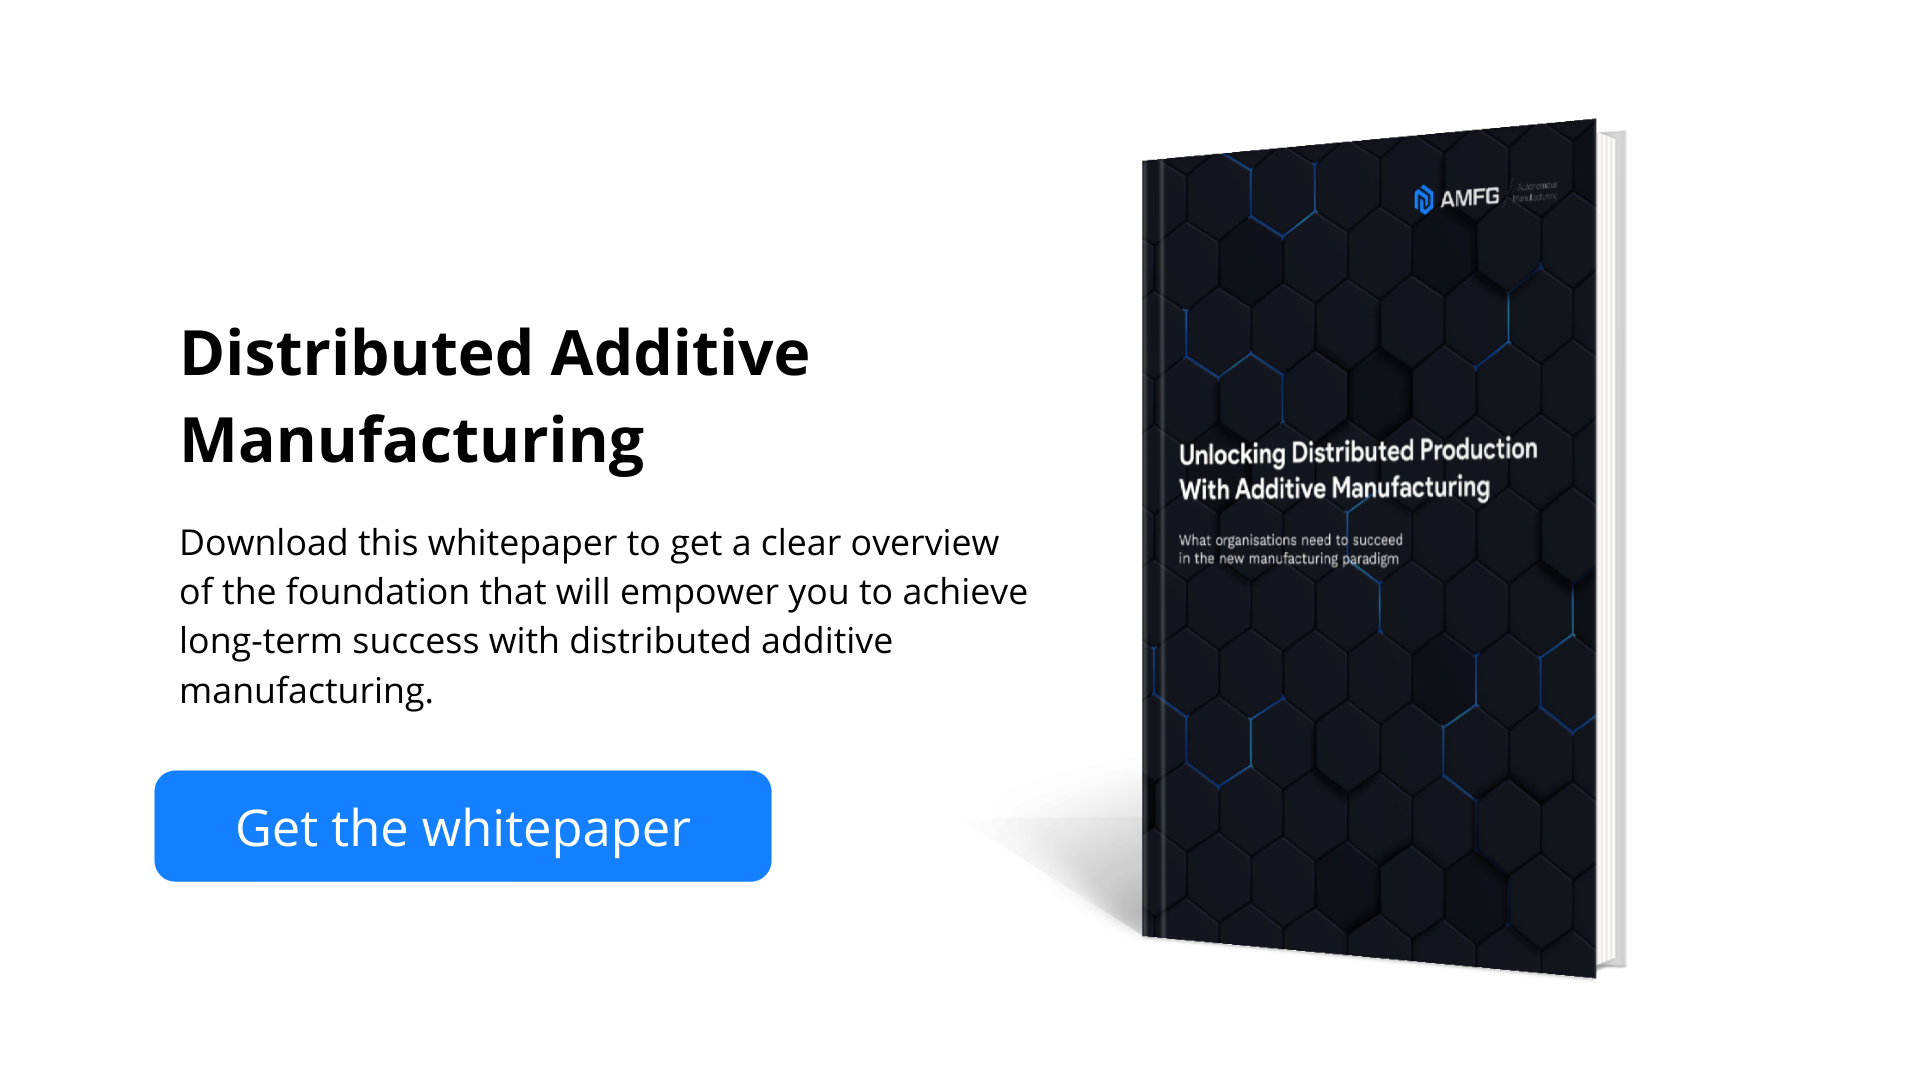 distributed additive manufacturing